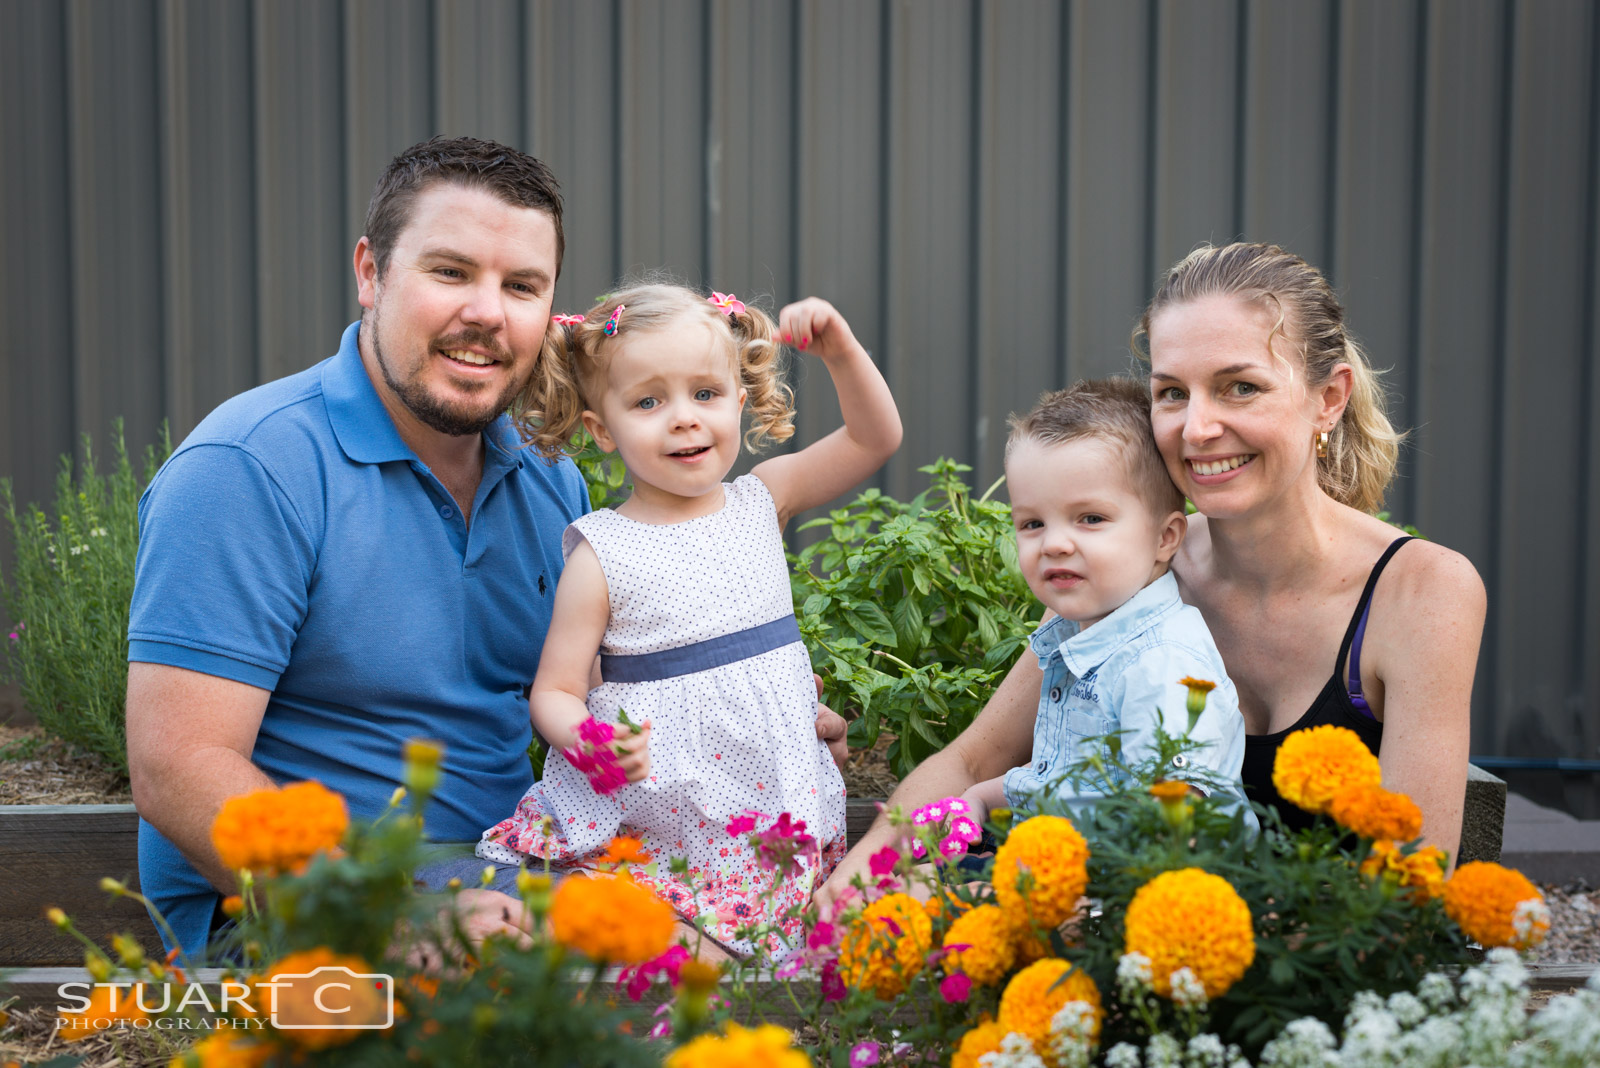 Outdoor family photo in their backyard vegie patch